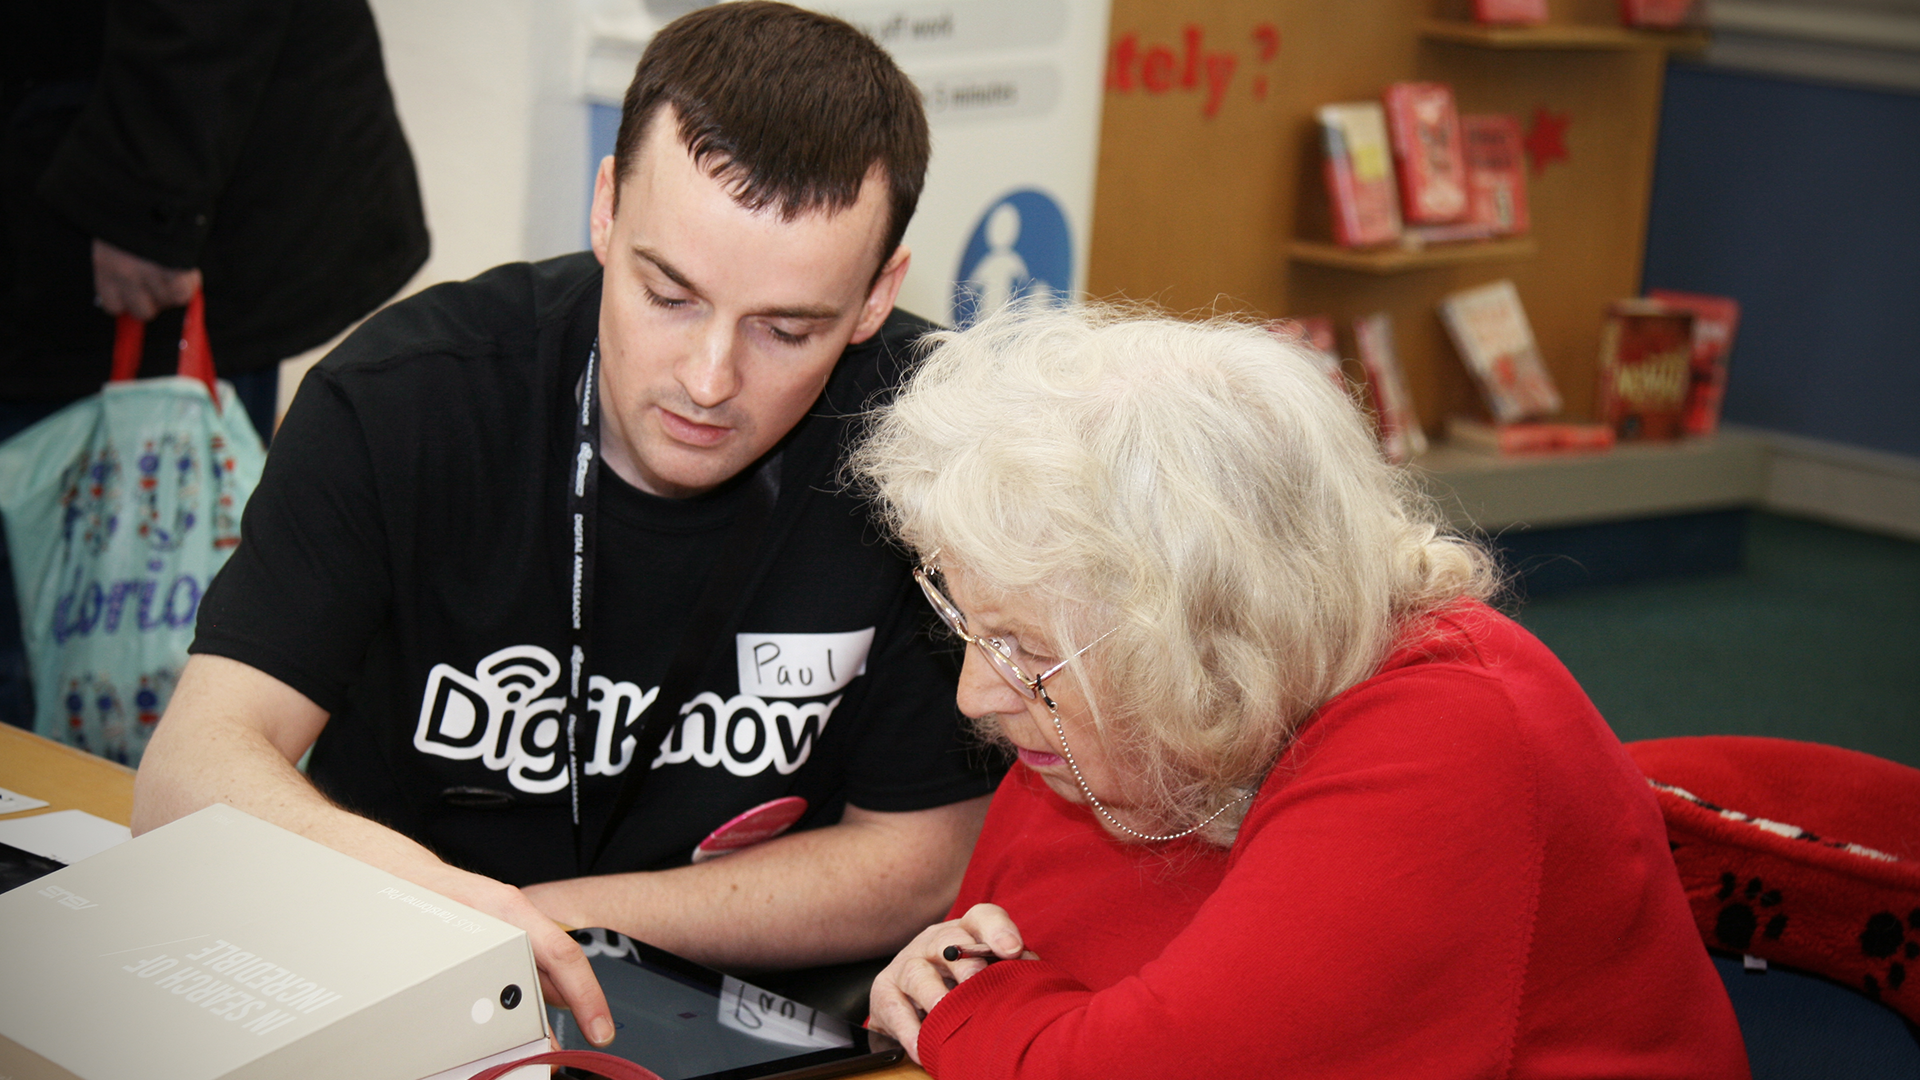 New Alliance to help Stockport residents improve their digital skills